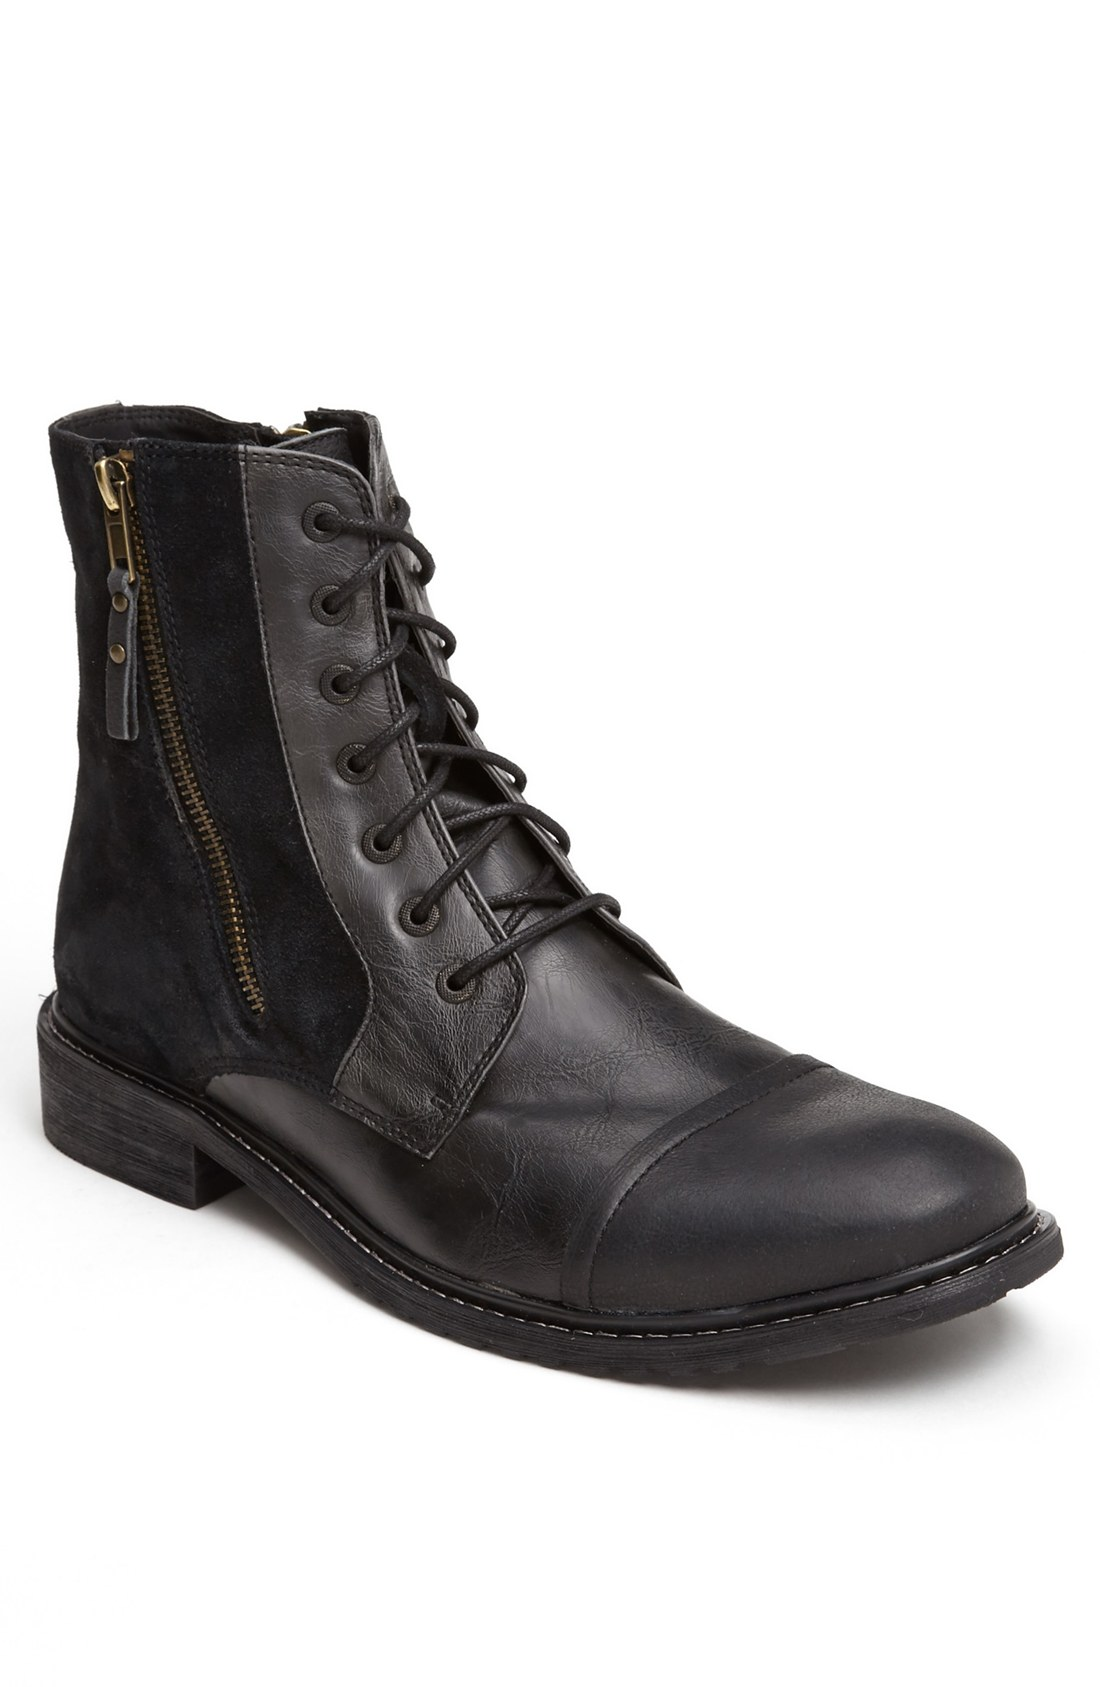 kenneth cole reaction hit cap toe boot in black for